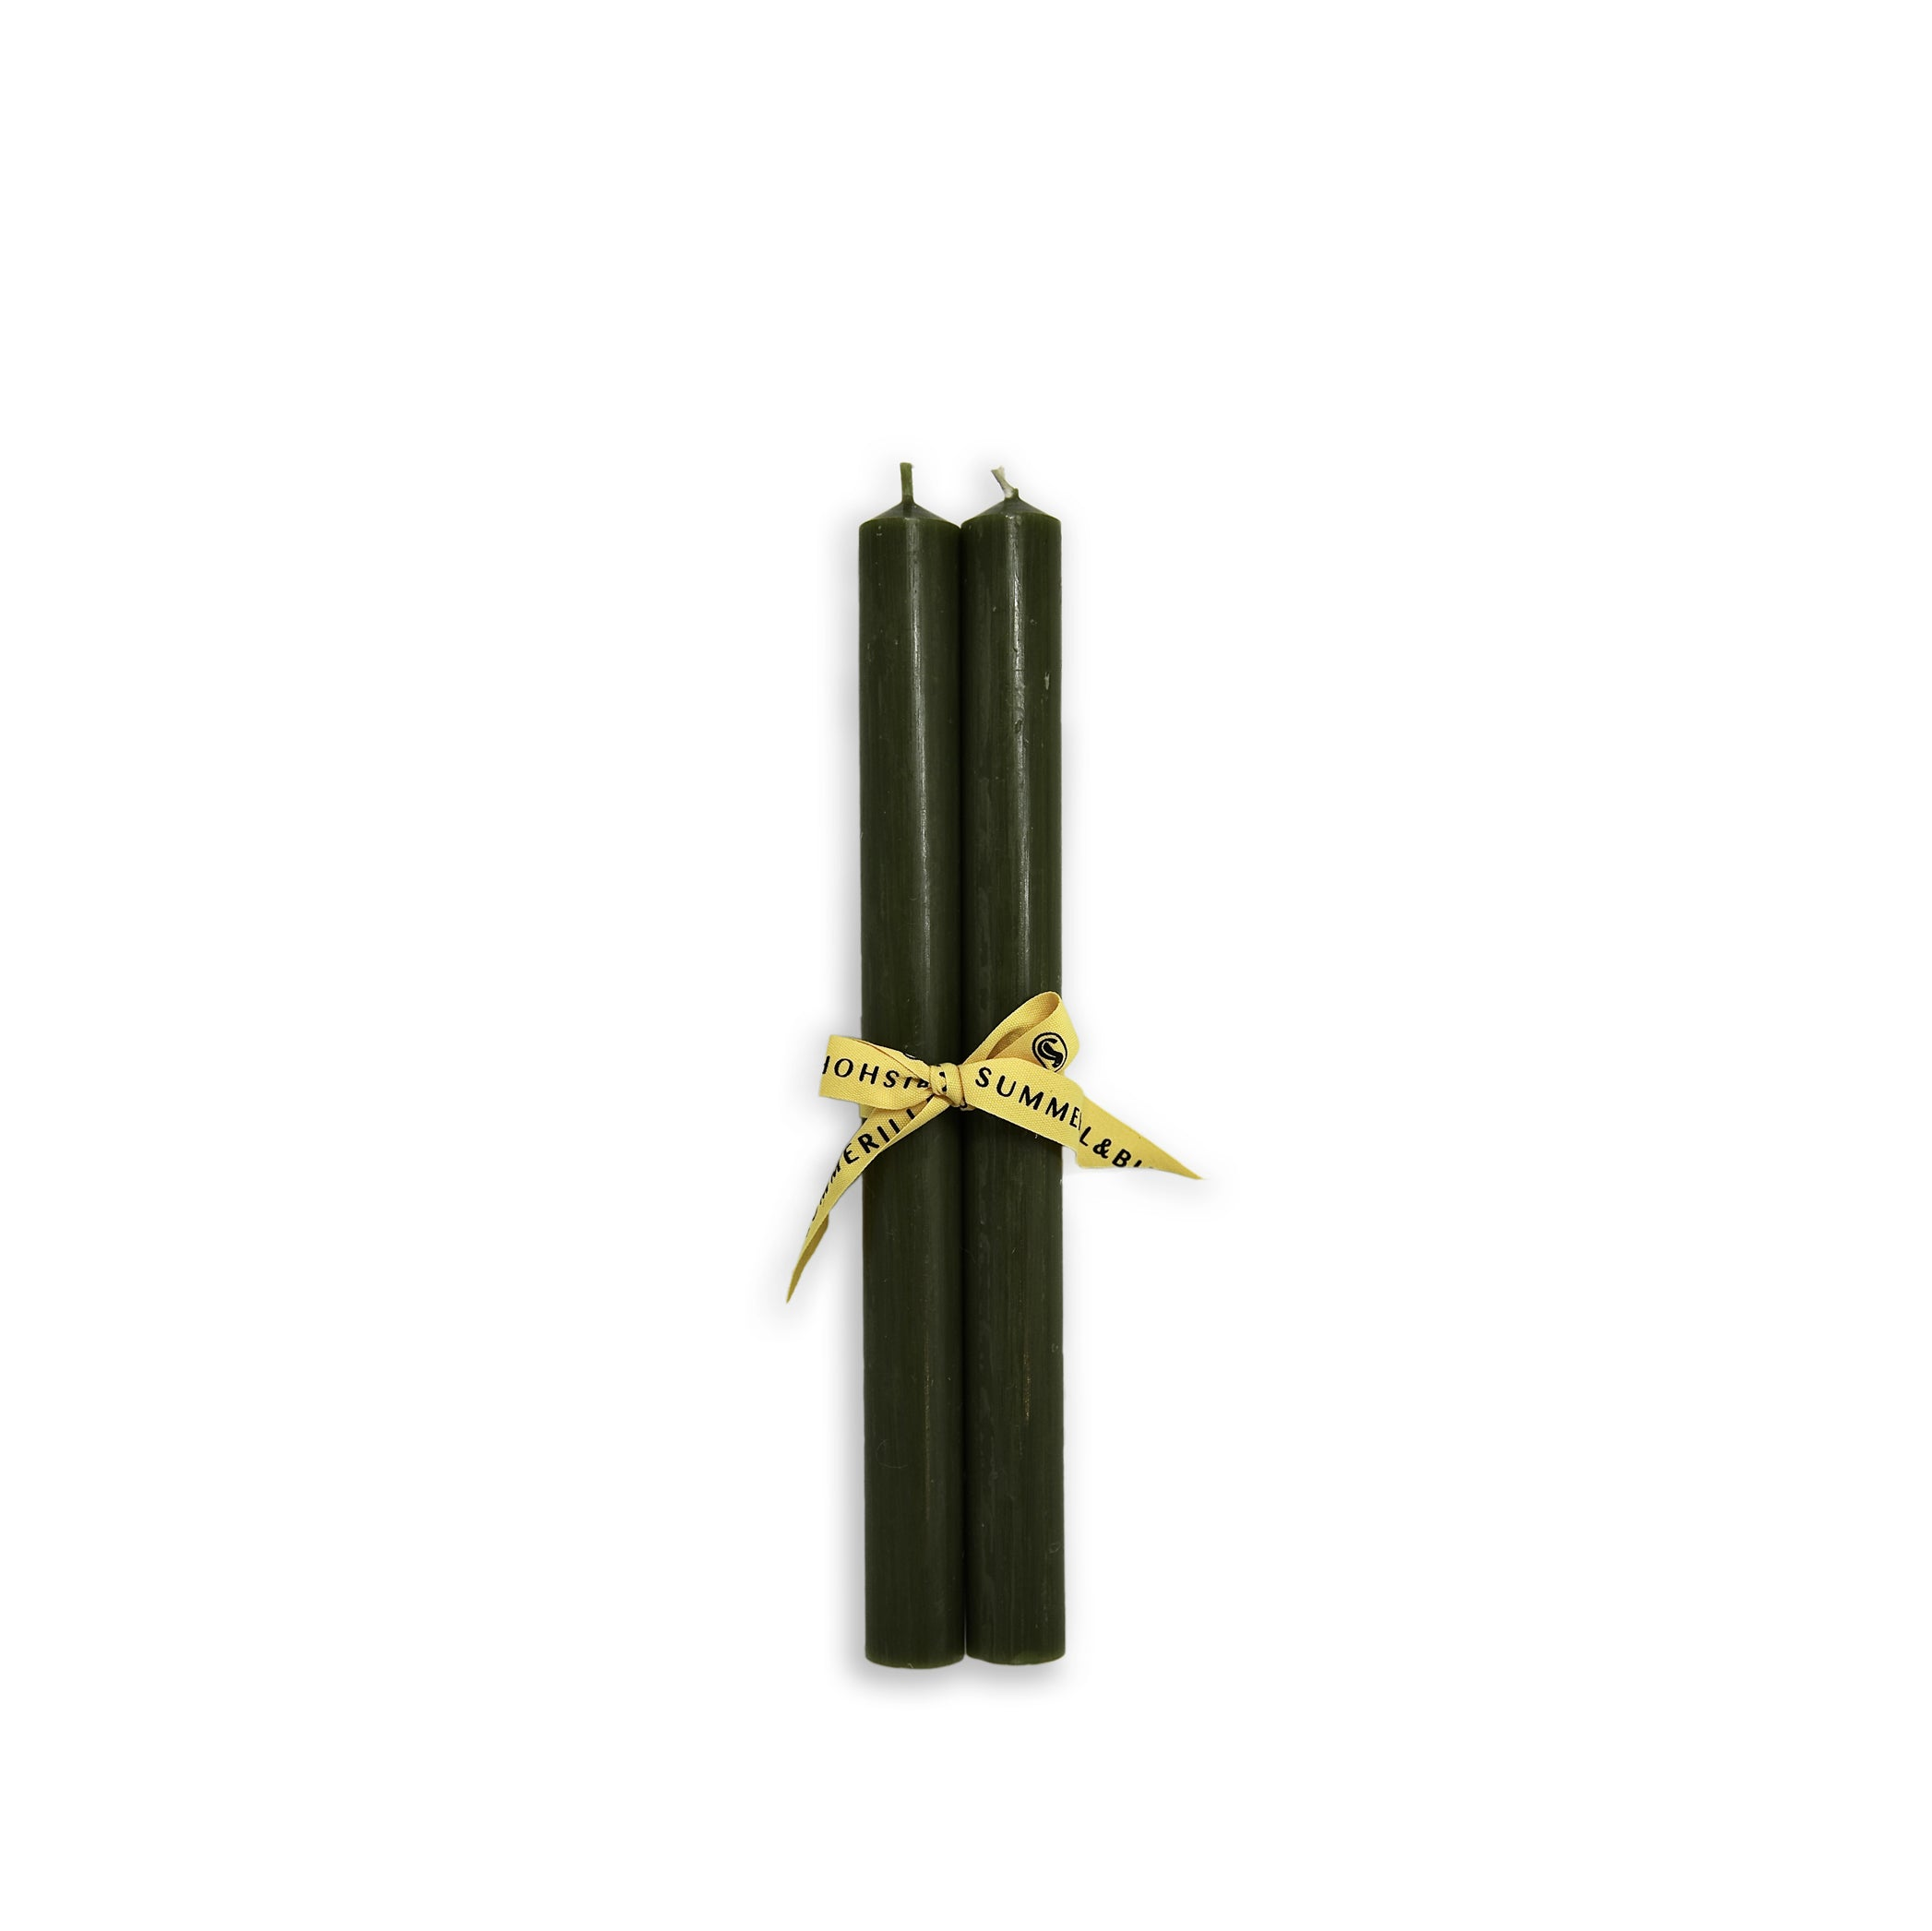 Pair of Coloured Church Candles in Dark Green